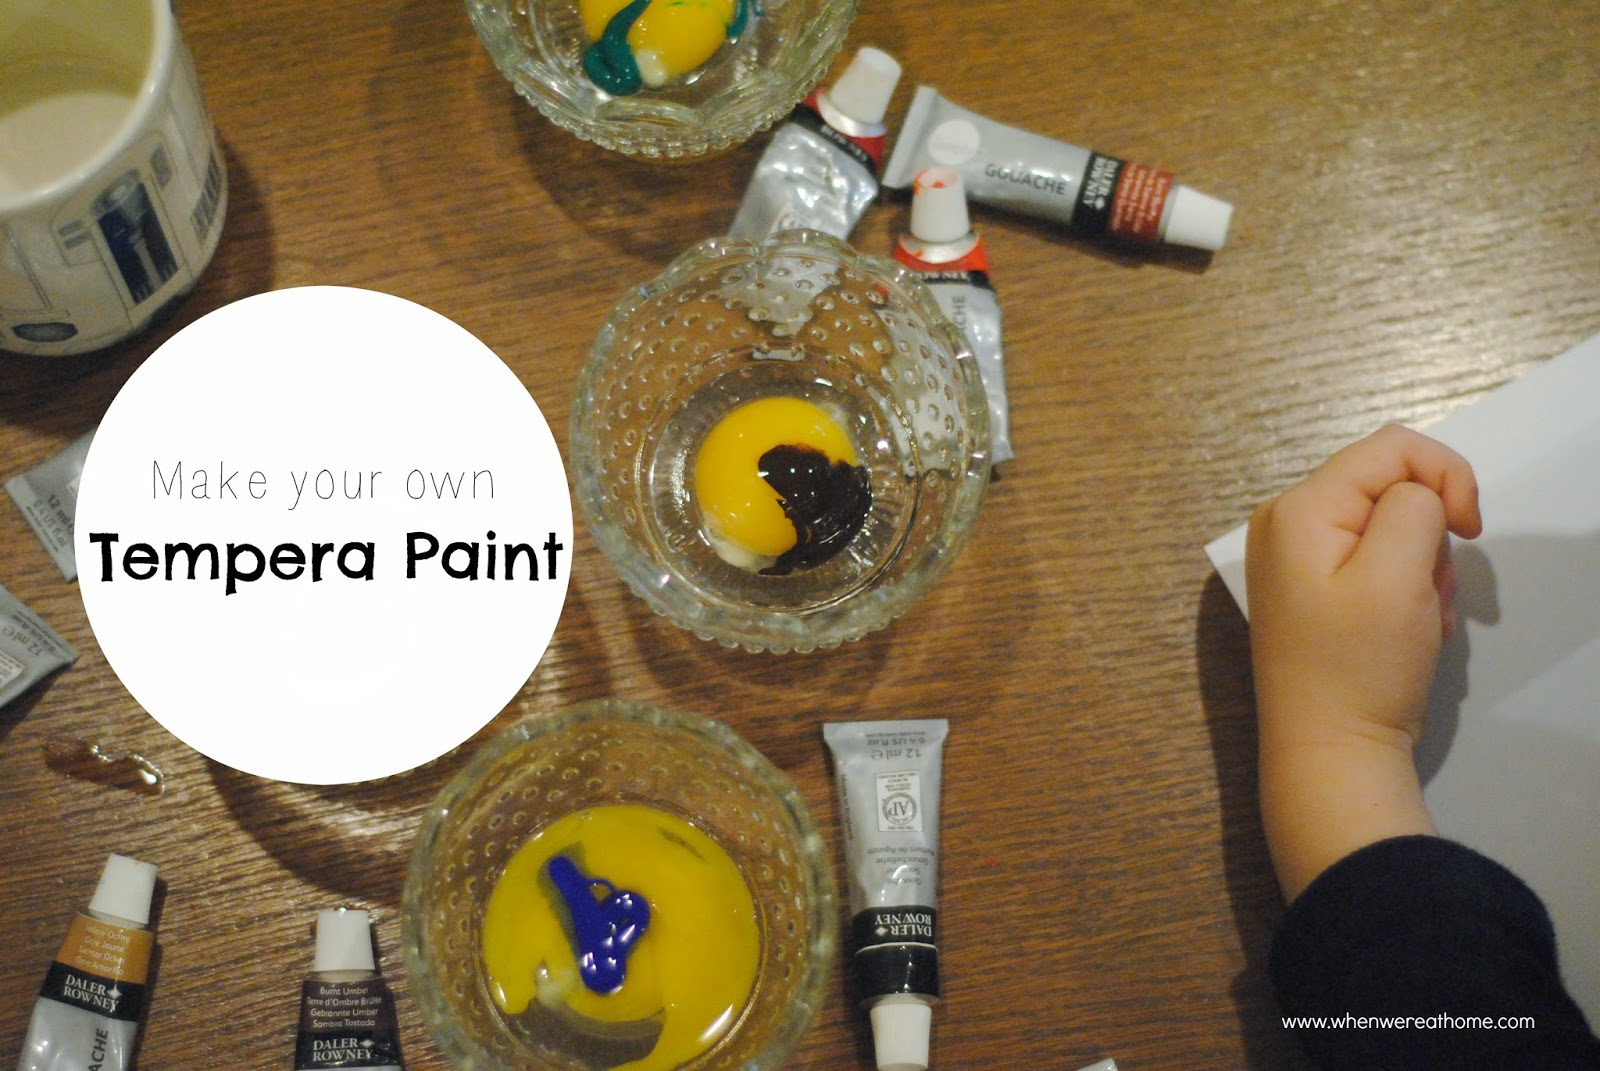 Make your own tempera paint